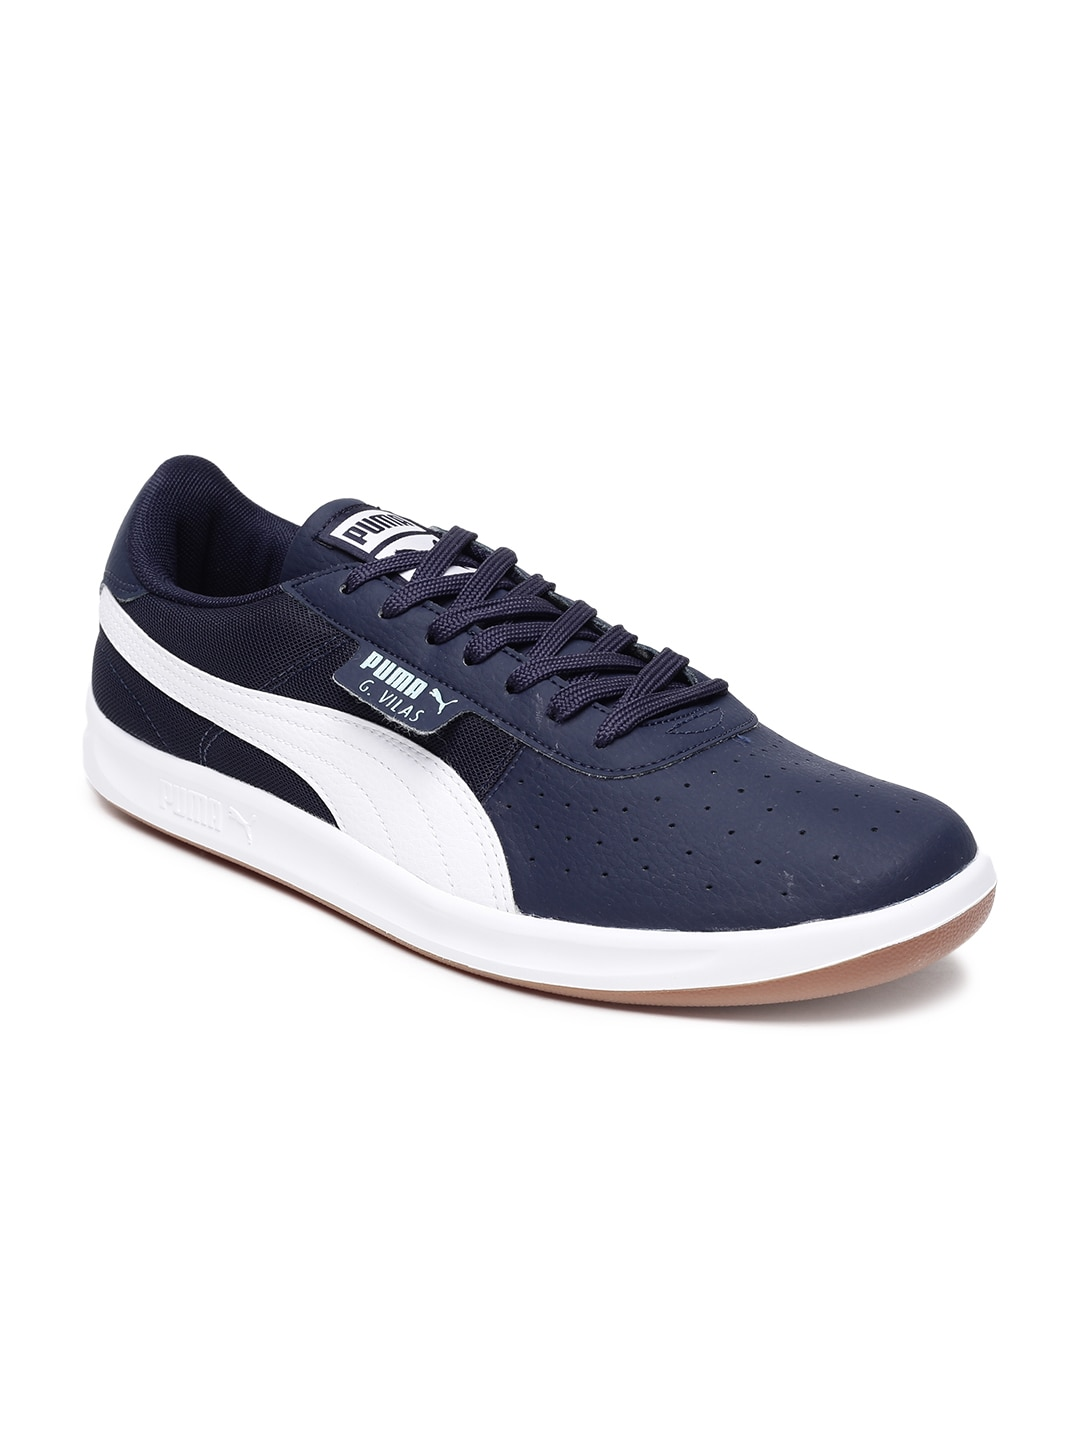 732ecb3916f5 Puma Shoes - Buy Puma Shoes for Men   Women Online in India